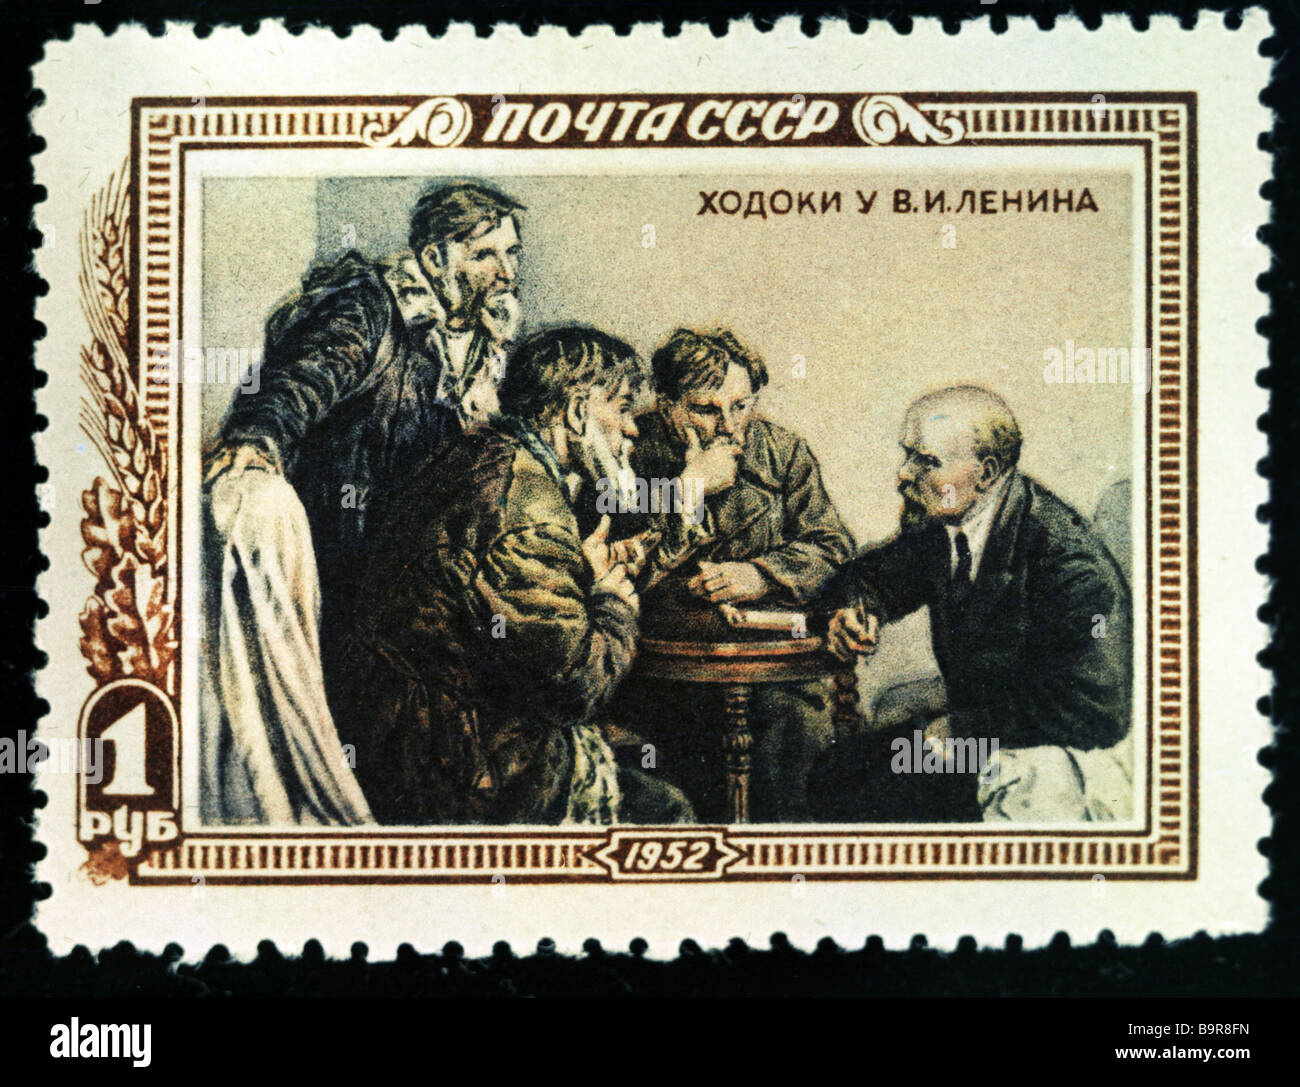 Postage stage reproducing the painting Peasants Bring Their Grievances to Vladimir Lenin s Notice - Stock Image